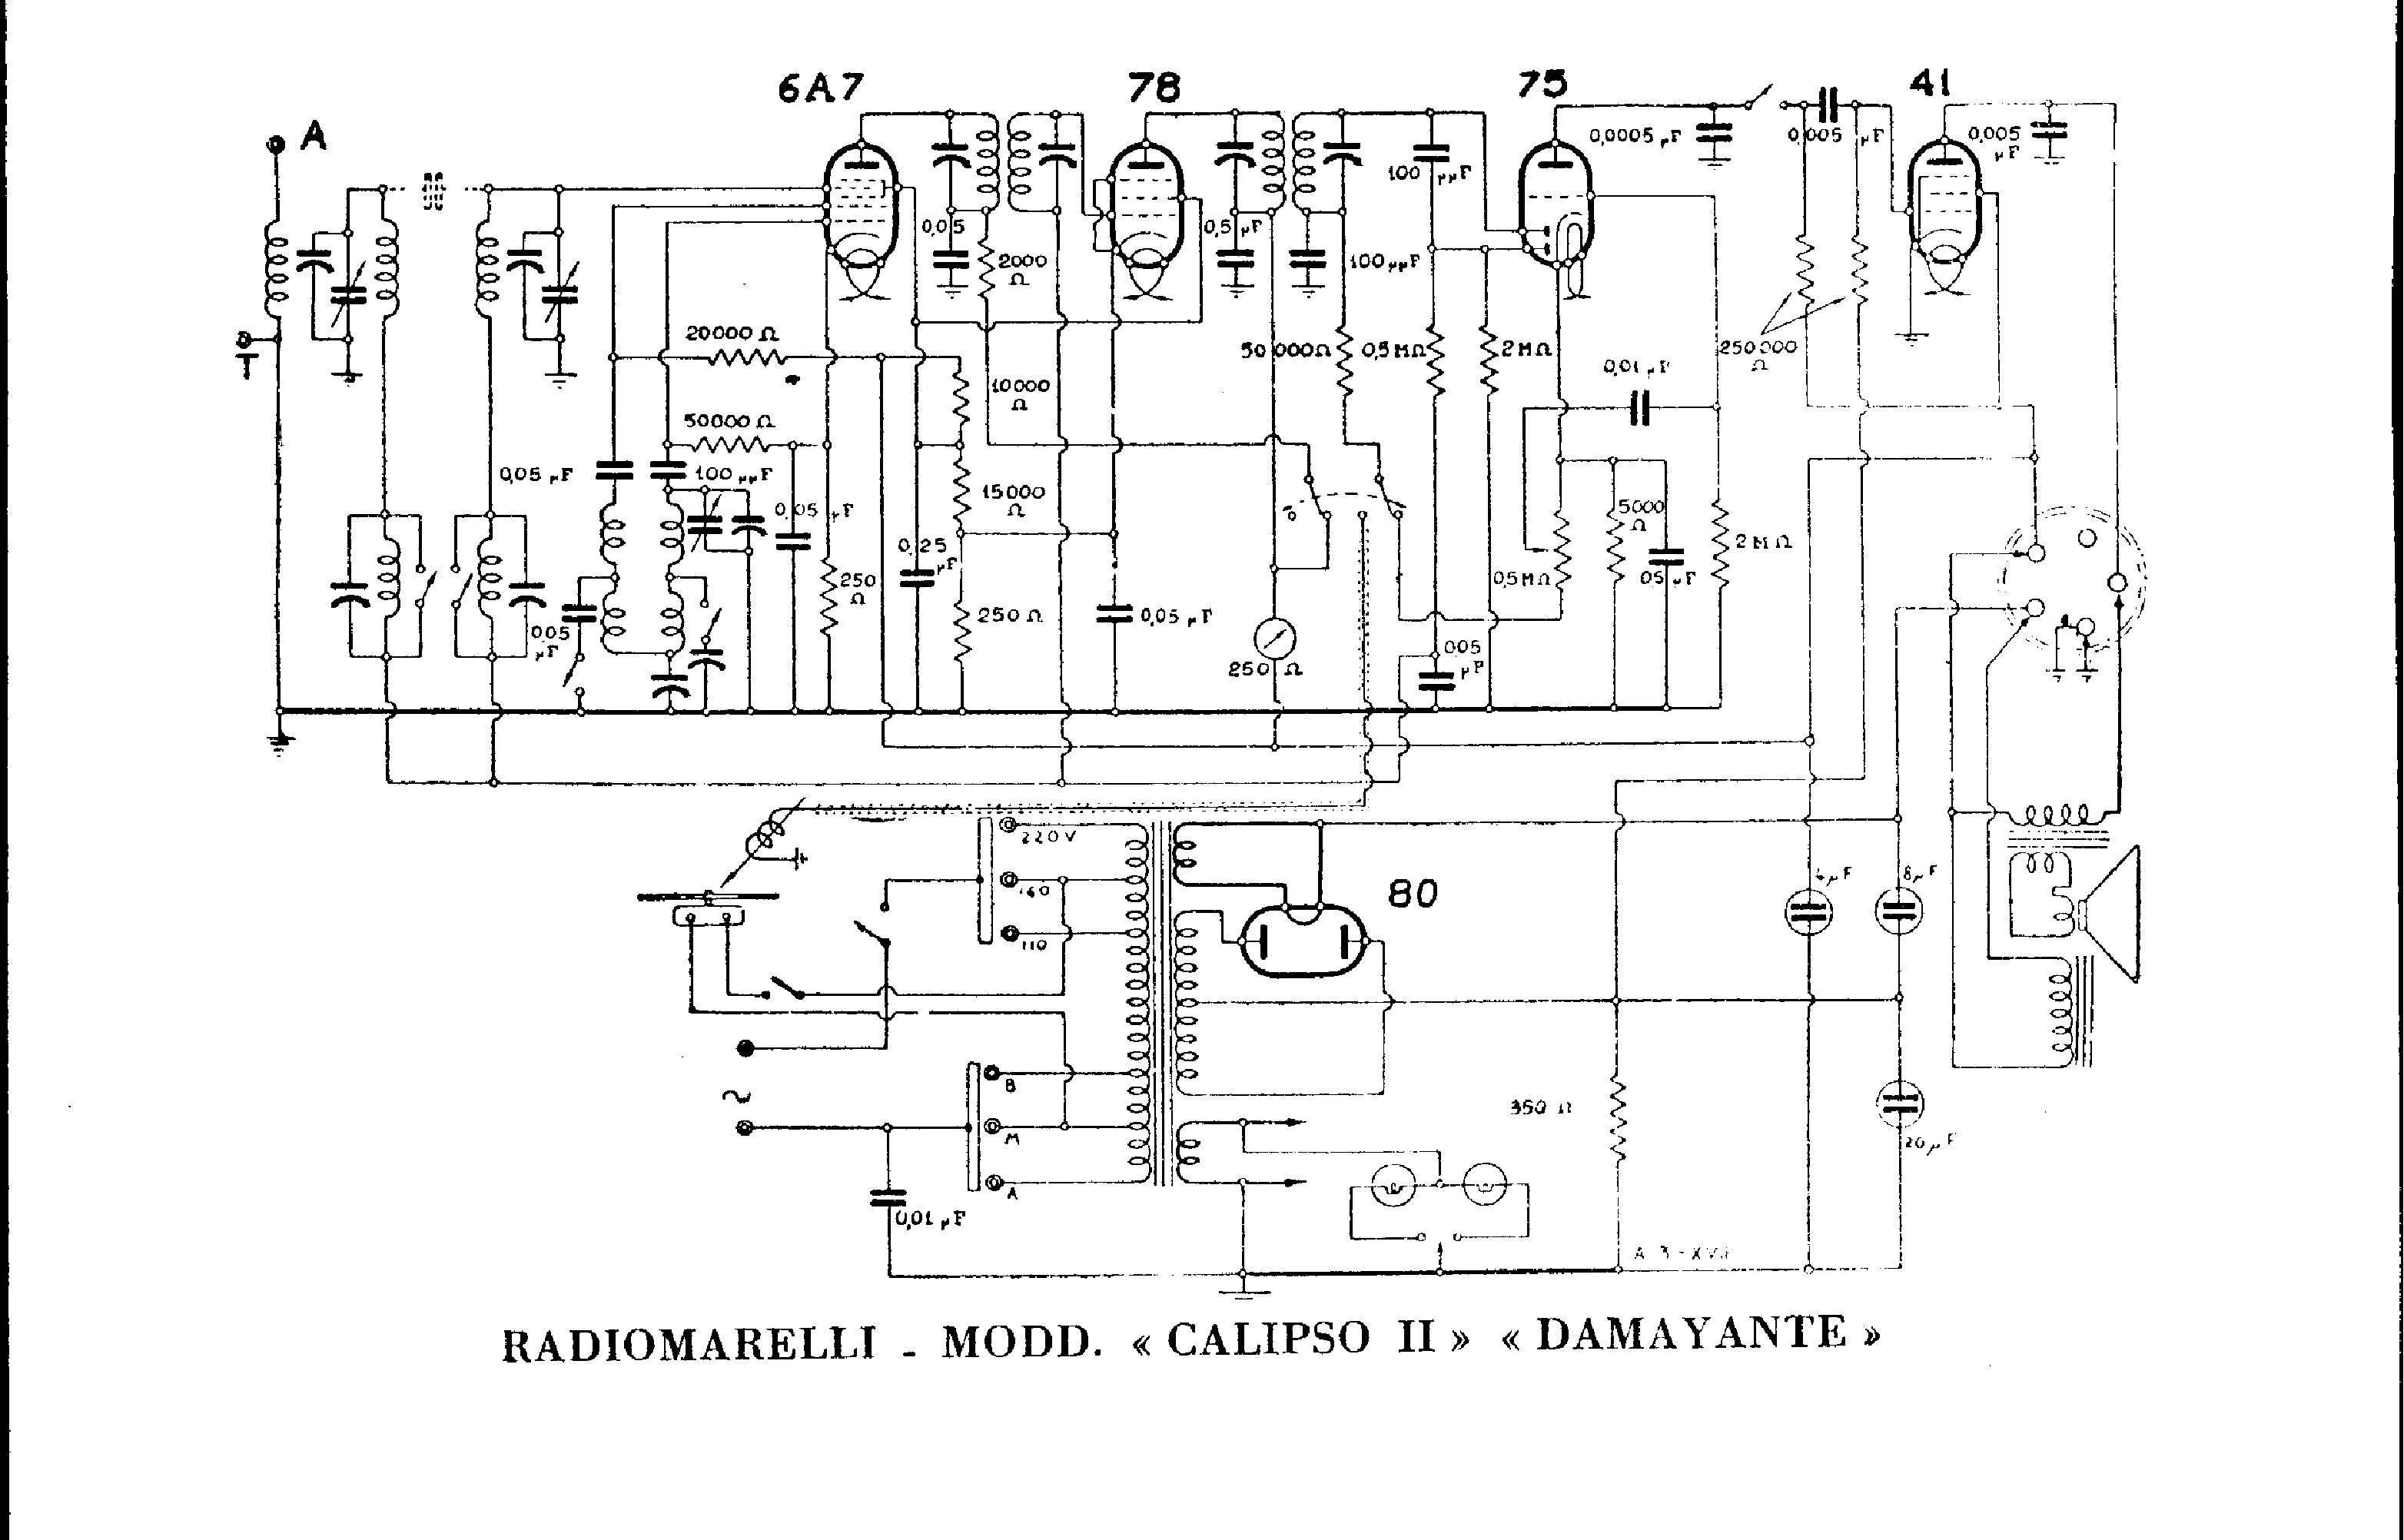 RADIOMARELLI DAMAYANTE Service Manual free download